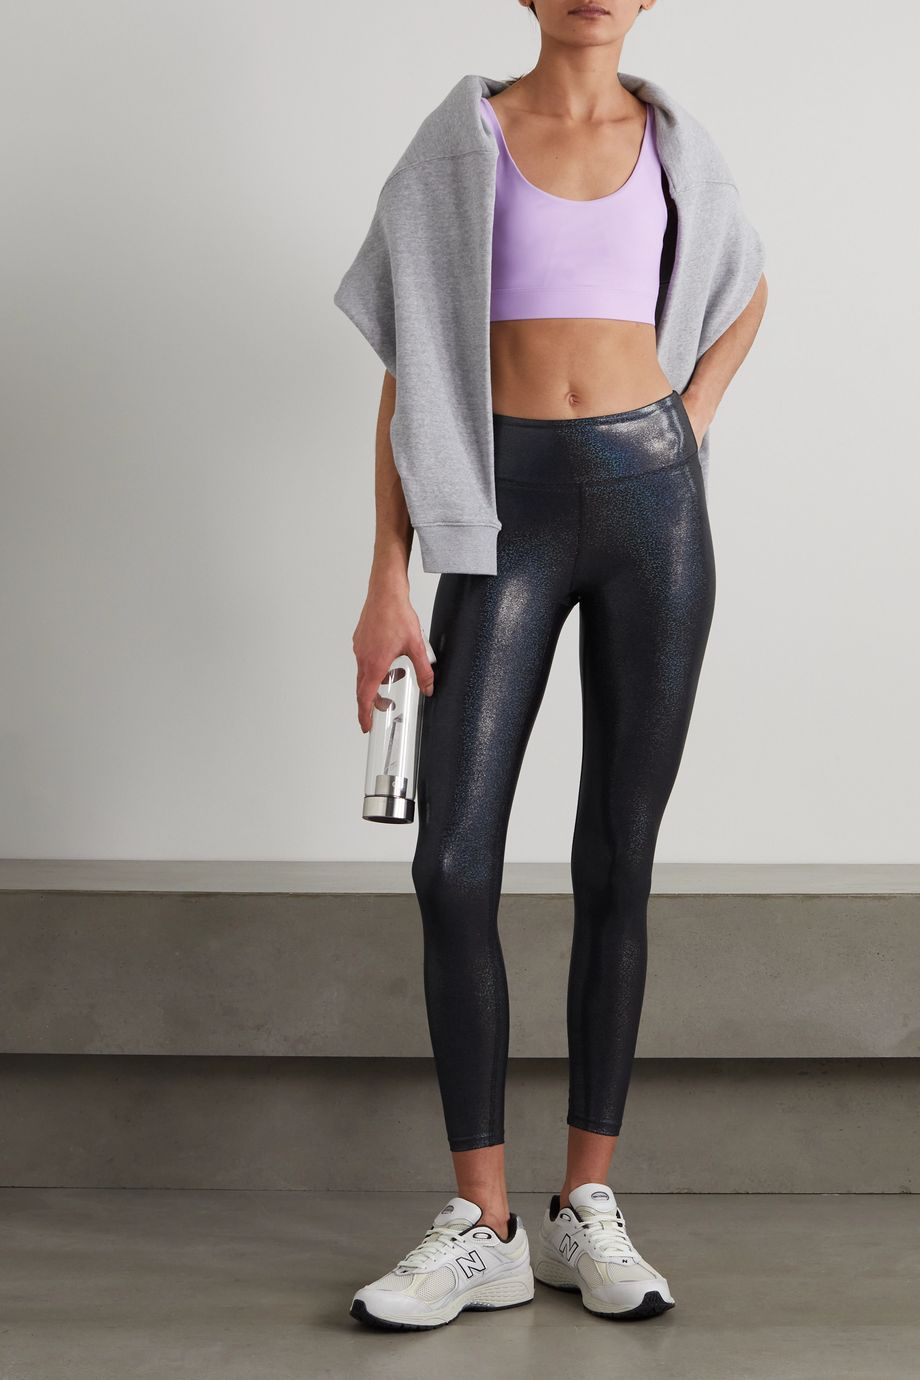 Heroine Sport Marvel Leggings aus Stretch-Material in Metallic-Optik